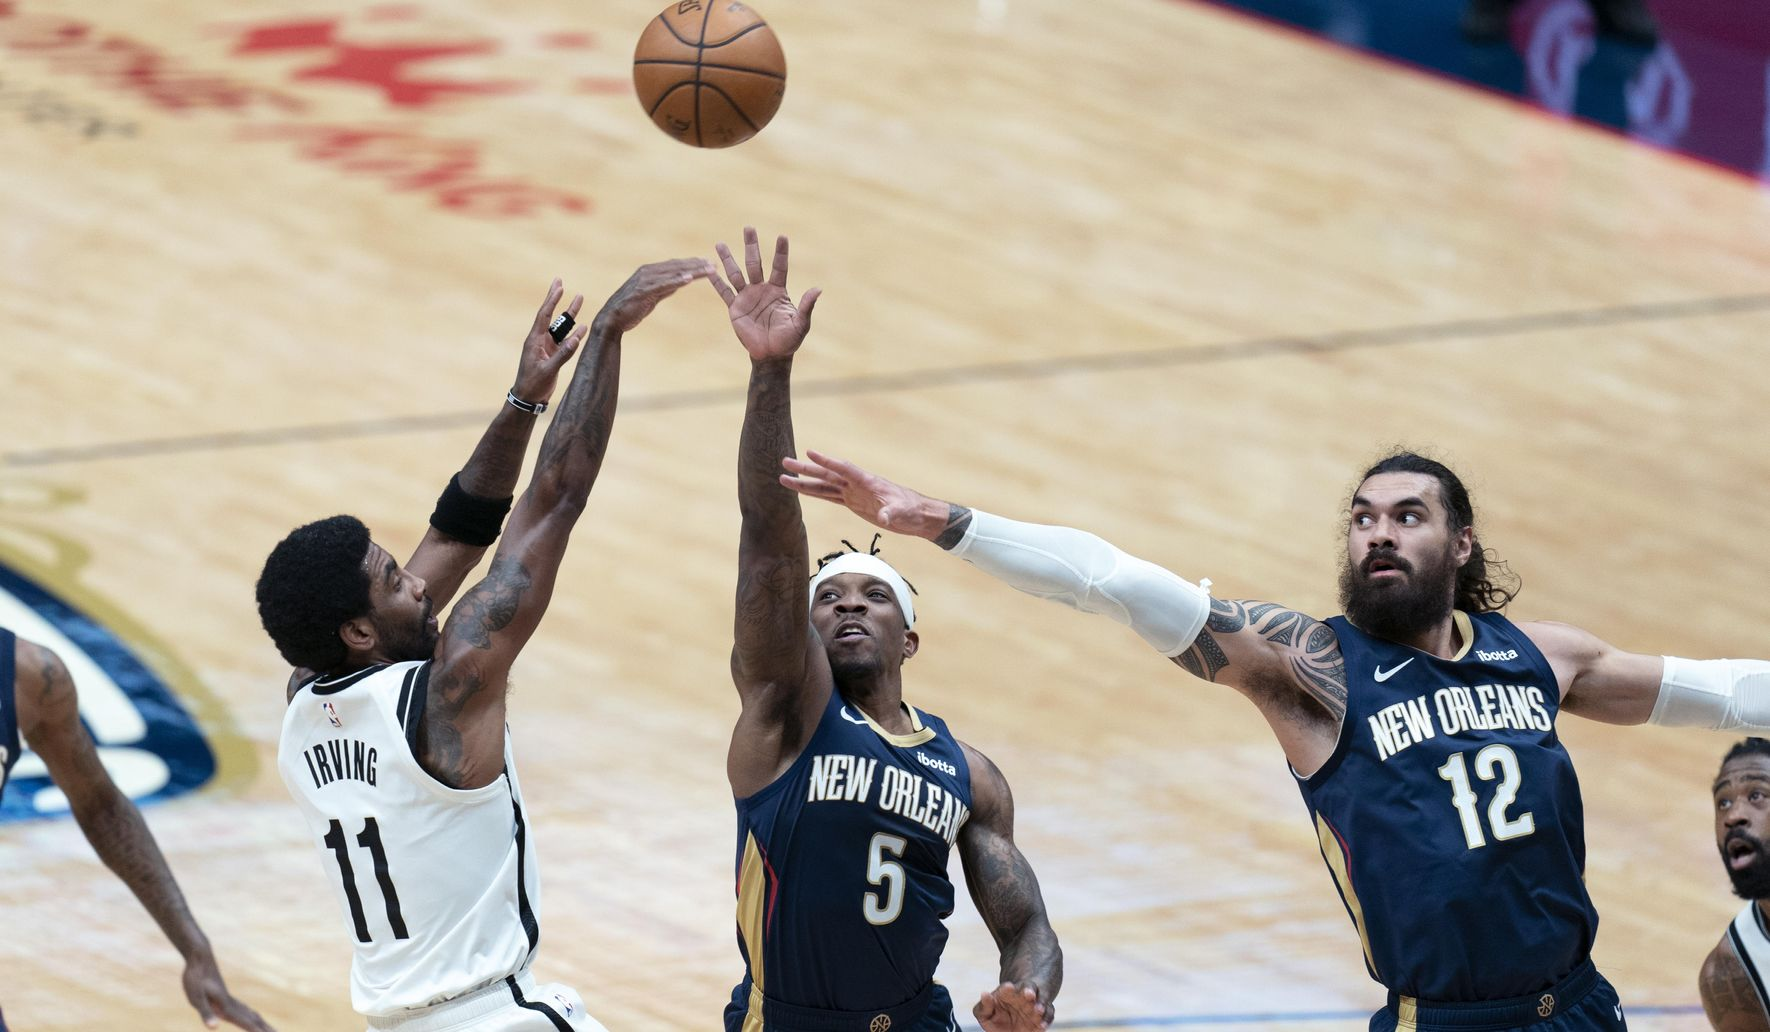 Nets_pelicans_basketball_92929_c0-210-5016-3134_s1770x1032